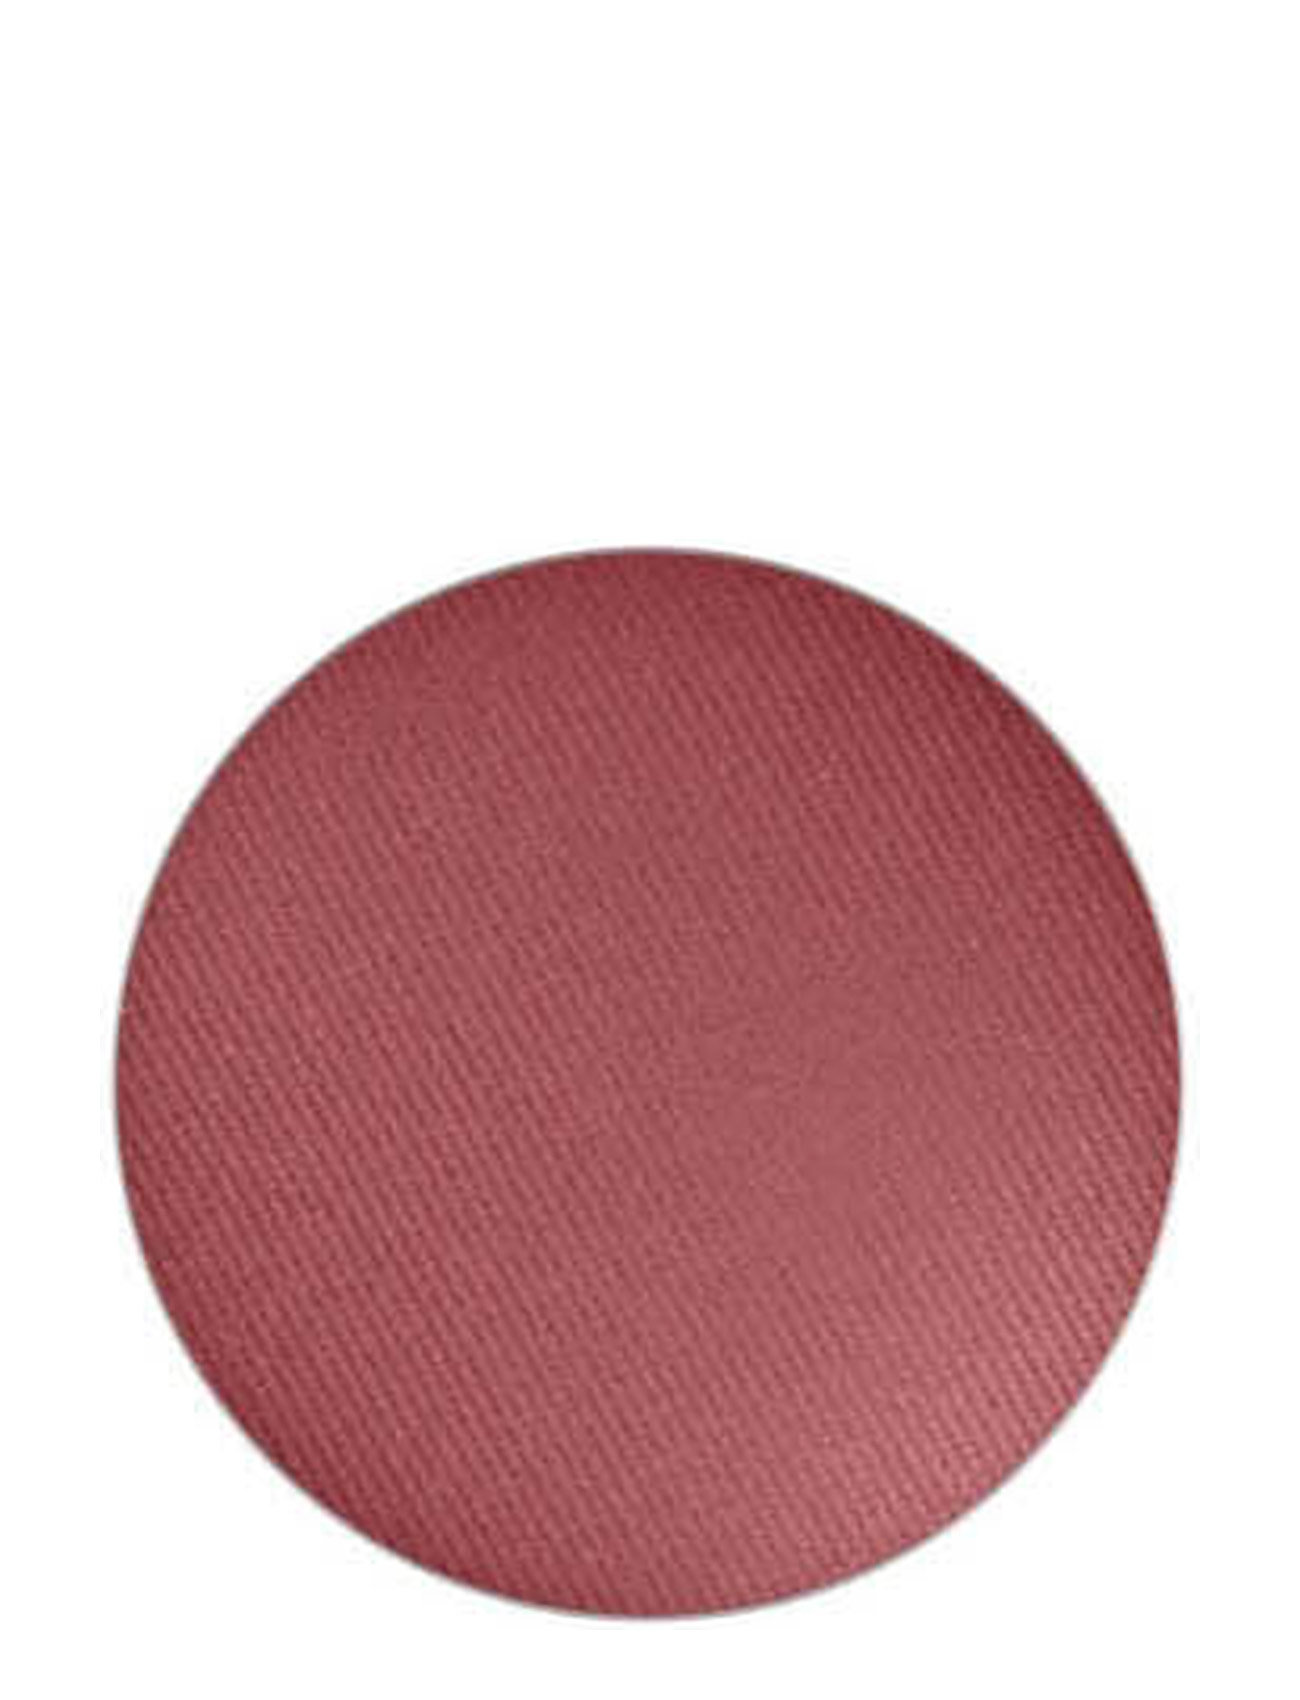 Image of Matte I'M Into It Beauty WOMEN Makeup Eyes Eyeshadow - Not Palettes Lyserød M.A.C. (3067513265)